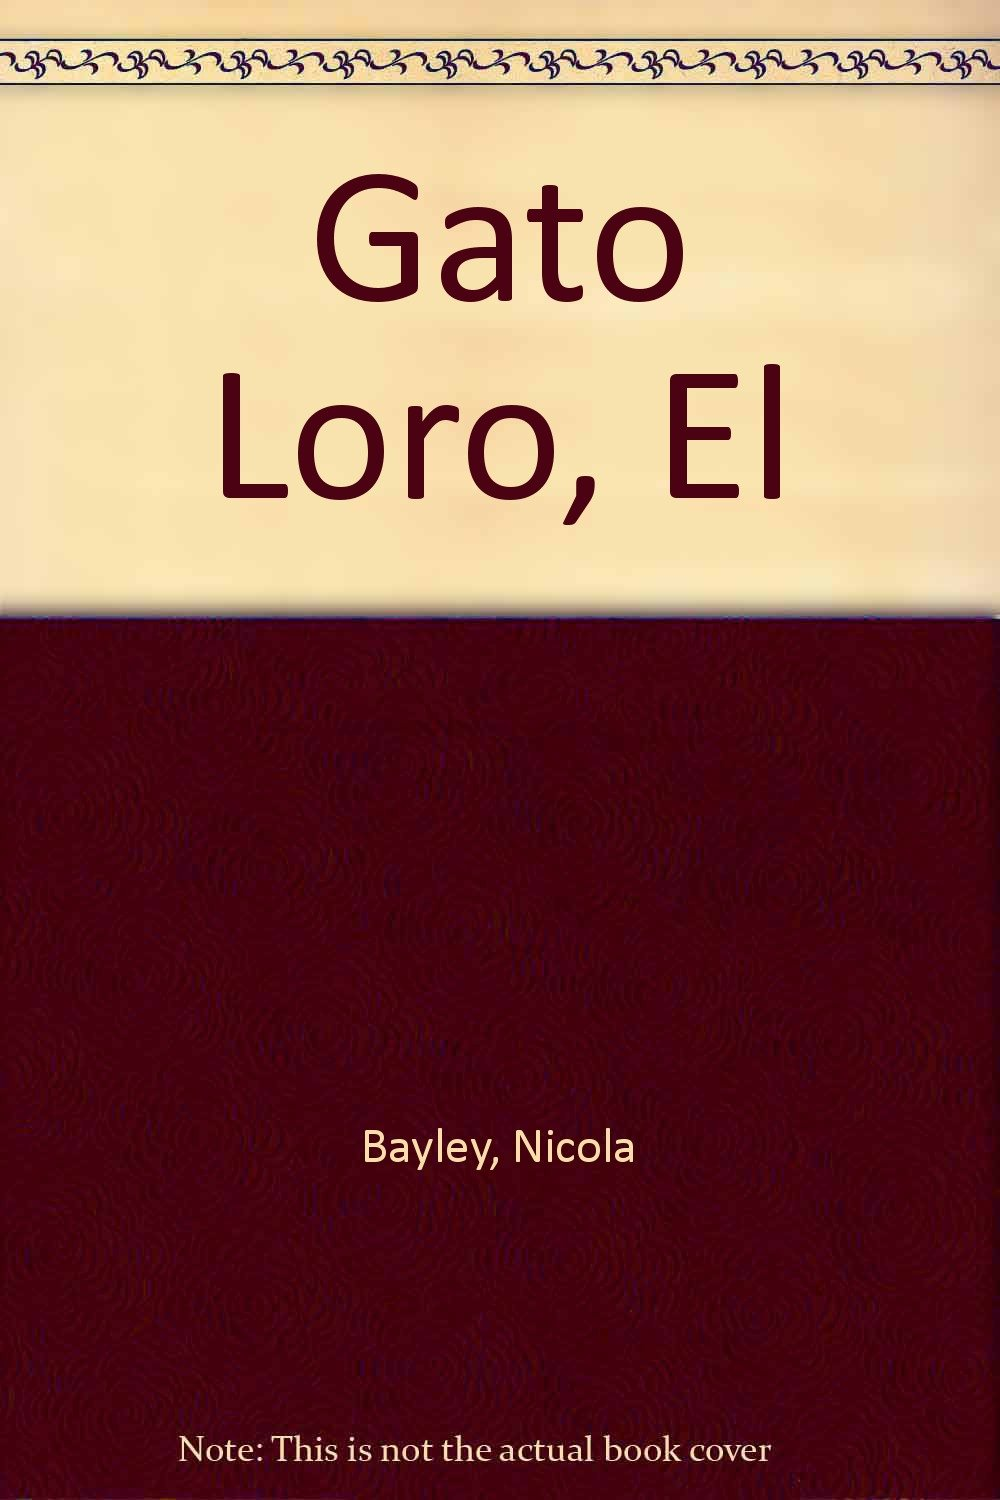 Gato Loro, El (Spanish Edition) (Spanish) Paperback – April, 1993